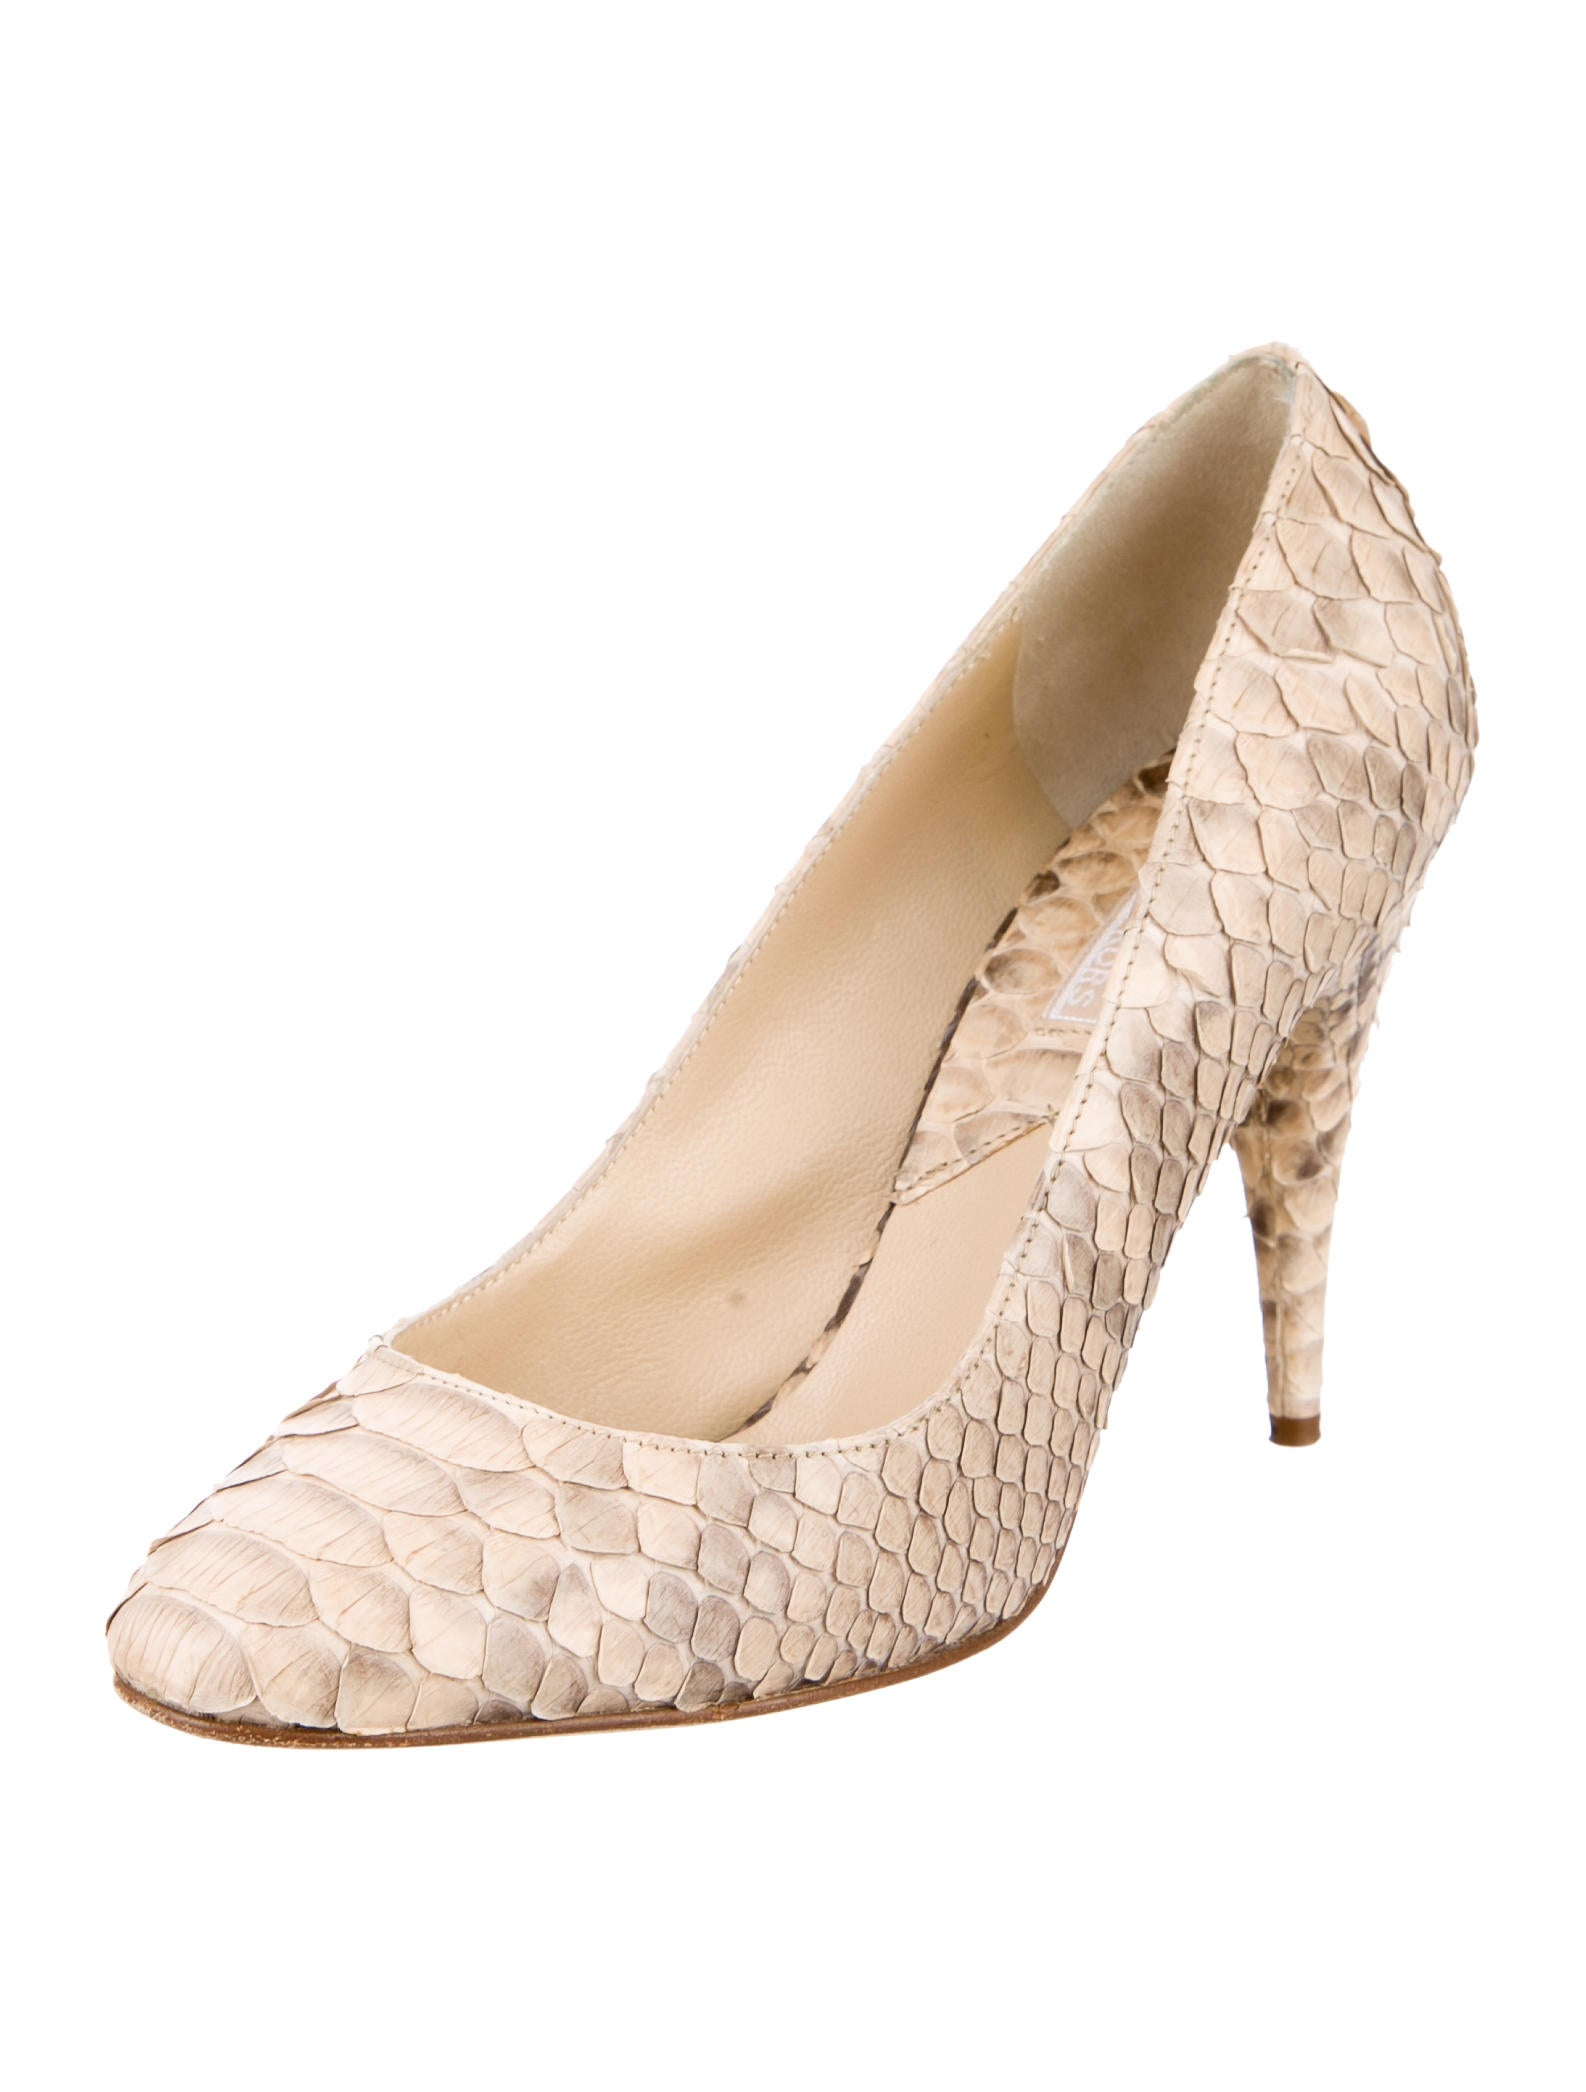 michael kors python round toe pumps shoes mic36498 the realreal. Black Bedroom Furniture Sets. Home Design Ideas